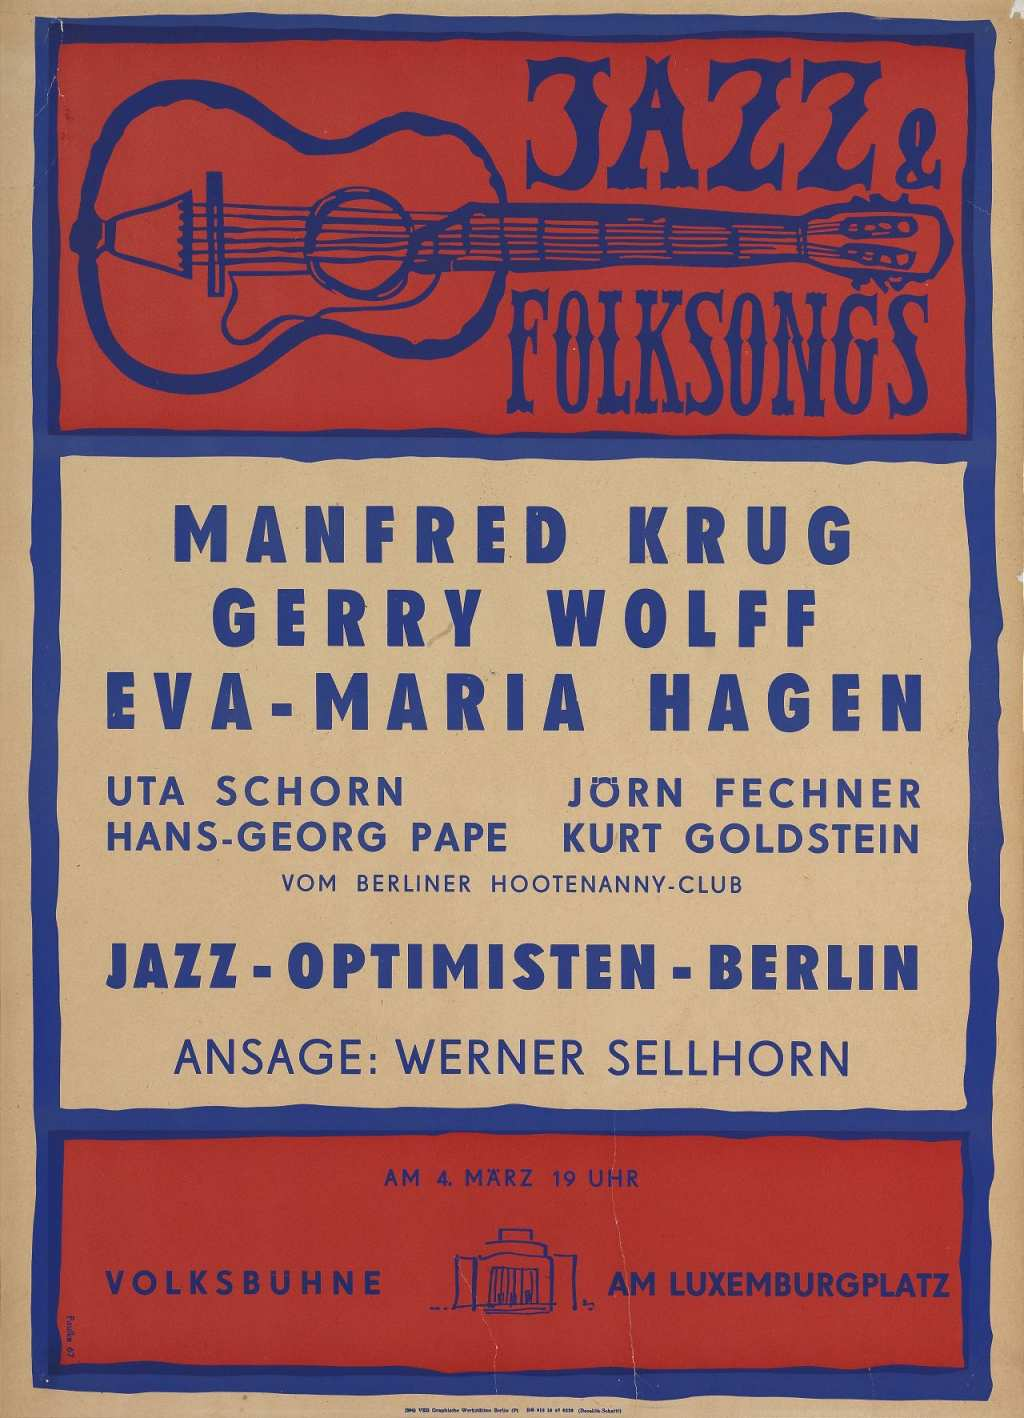 Poster for Jazz & Folksongs, 1967